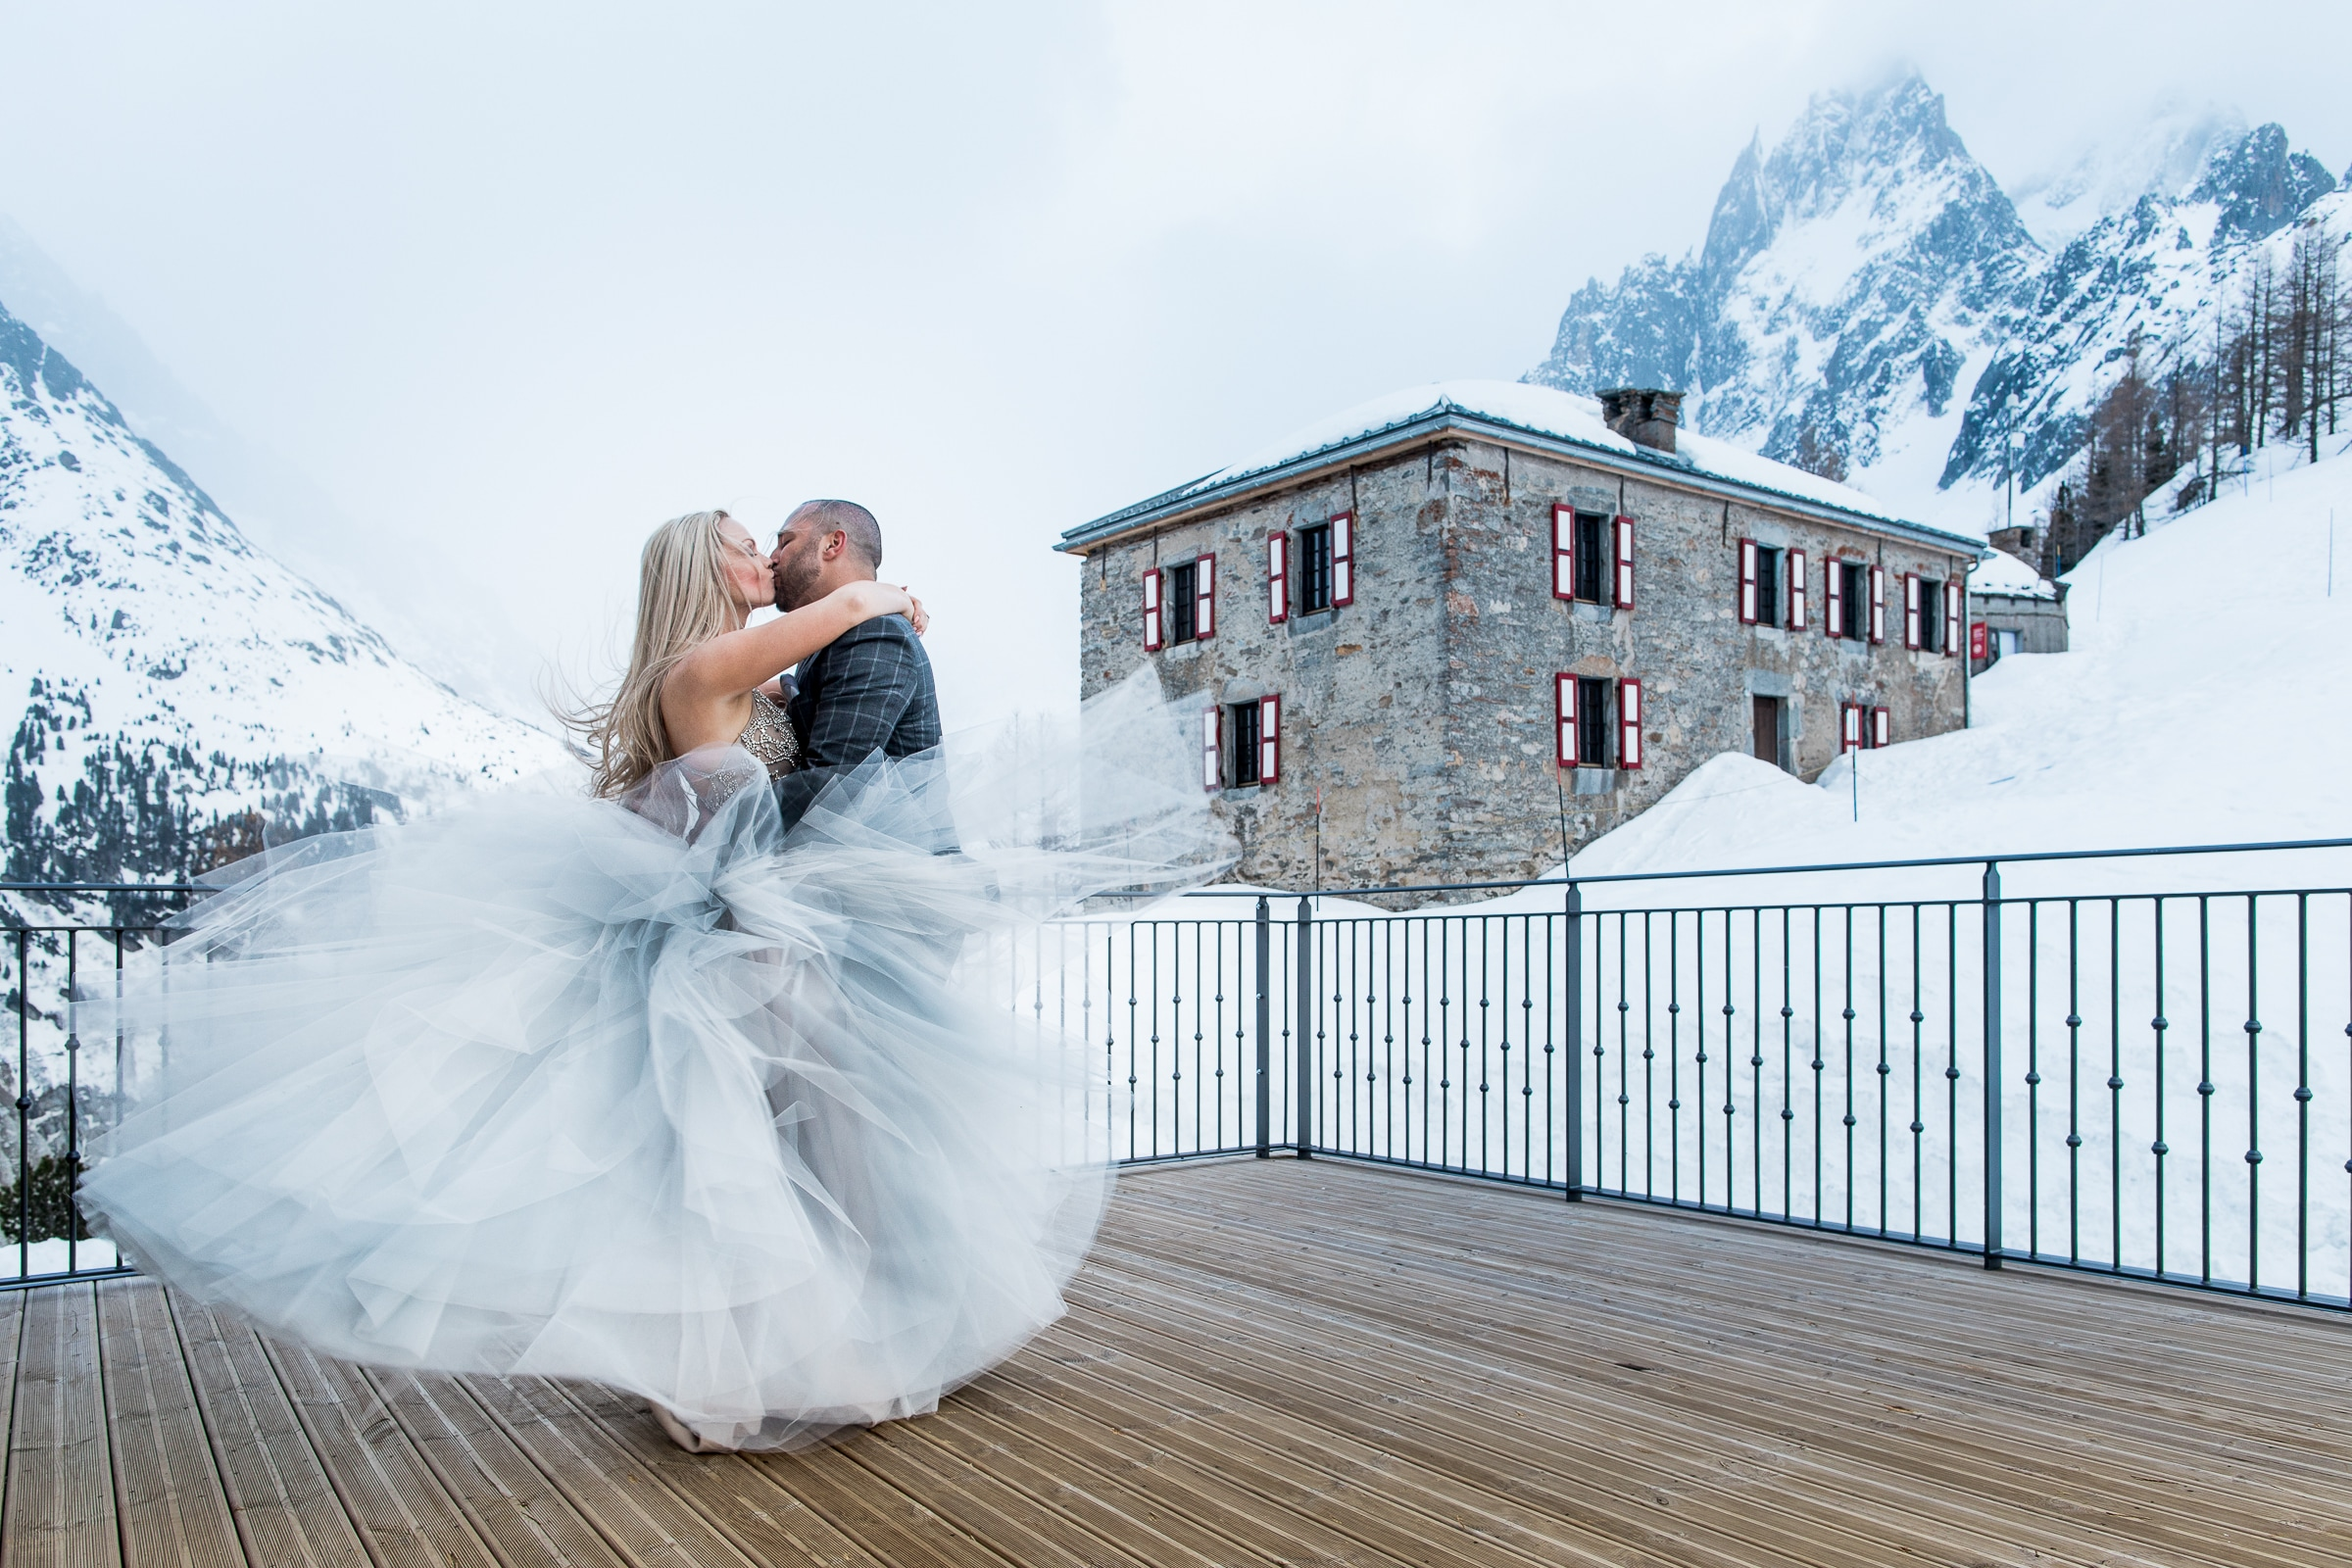 Tulle bride in the winter wind - photo by Sylvain Bouzat Wedding Photographer